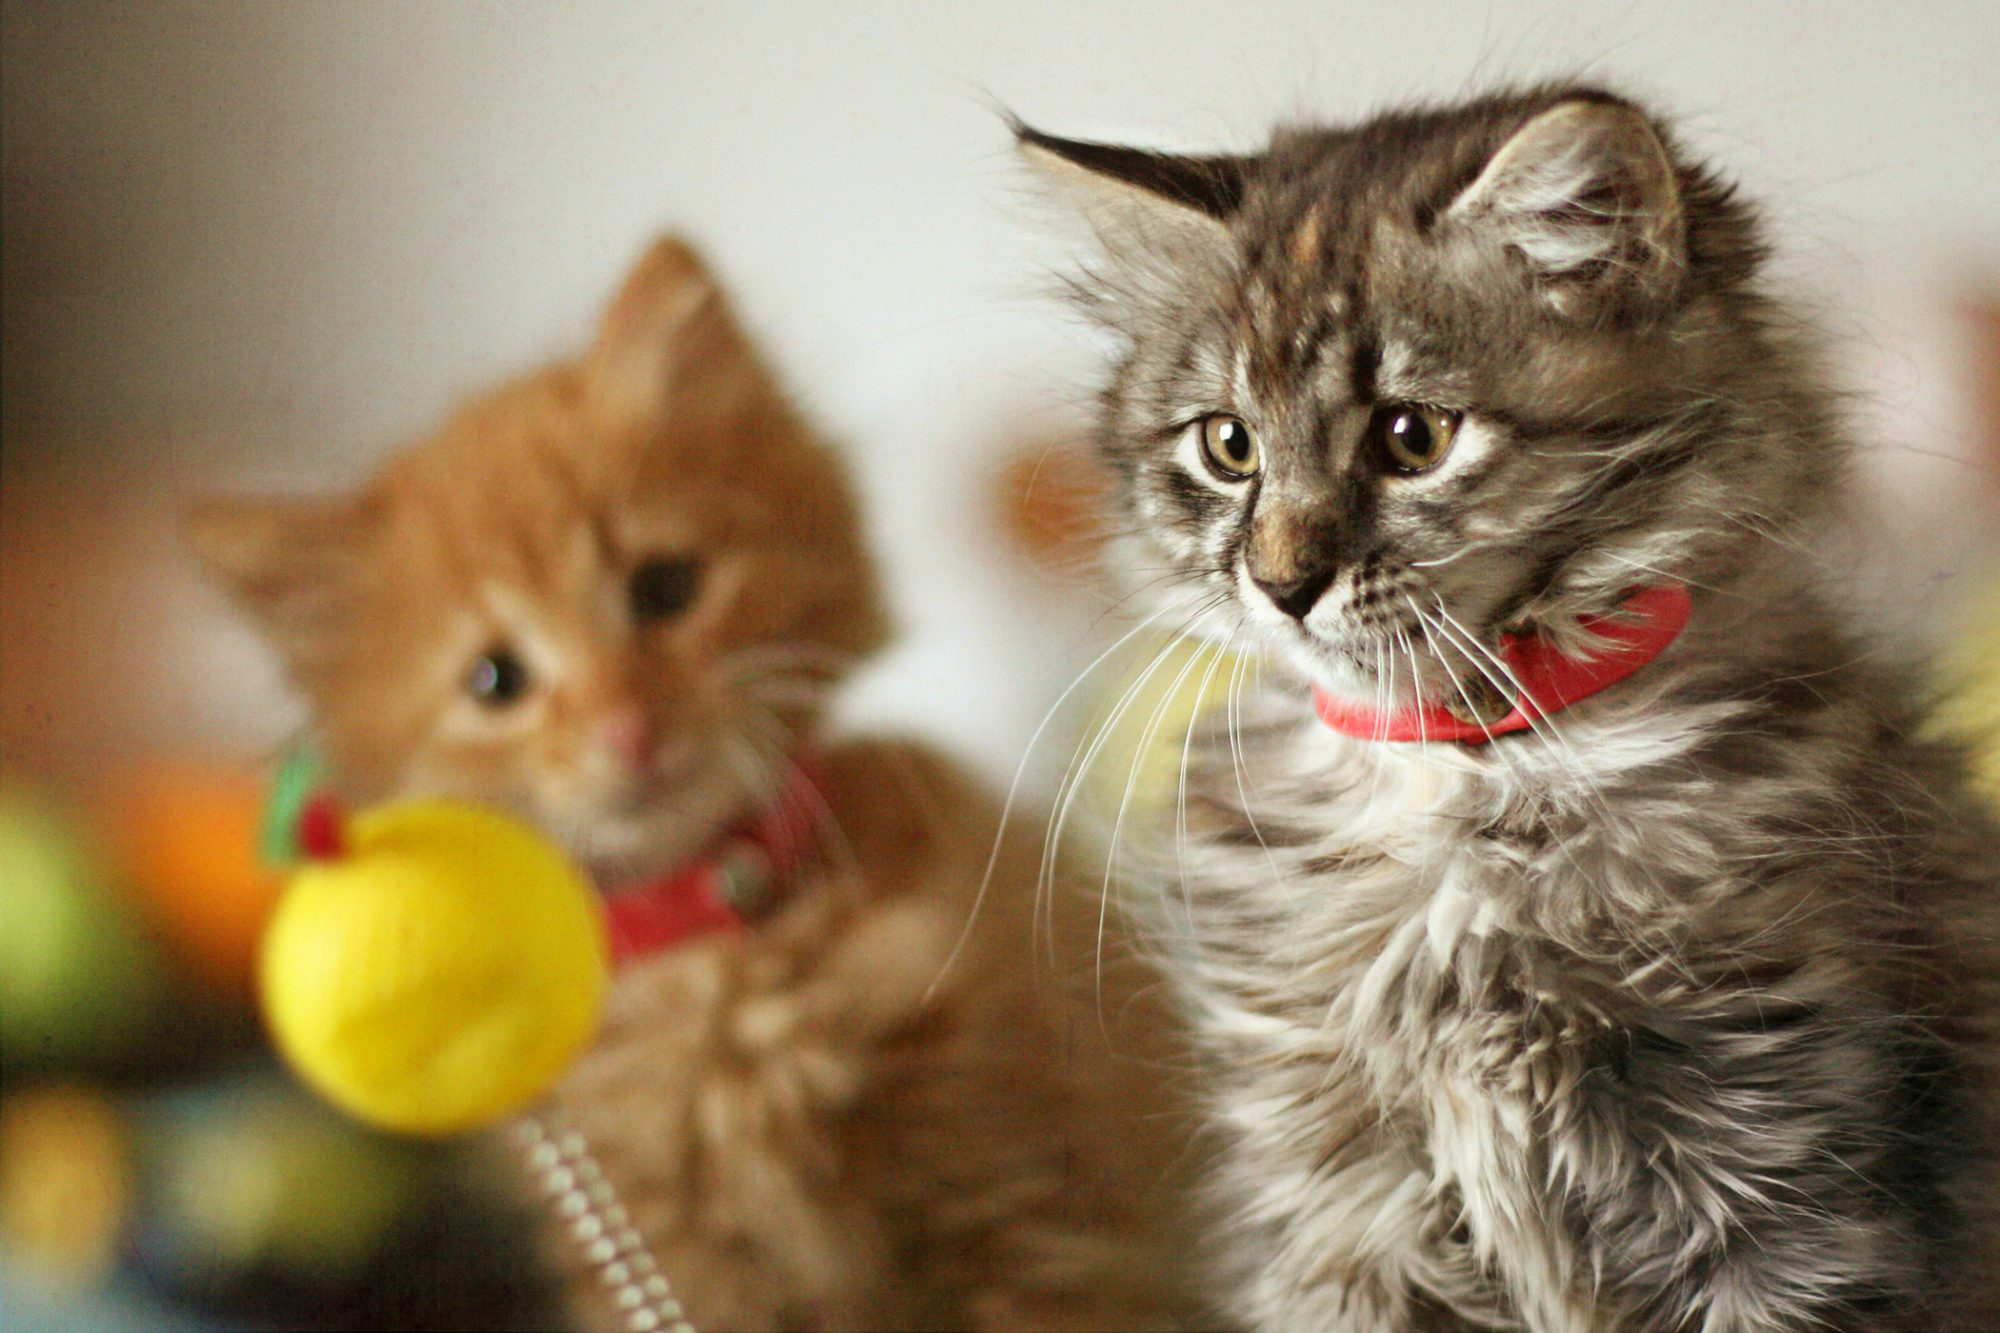 Two kittens play with ball toy on a stick